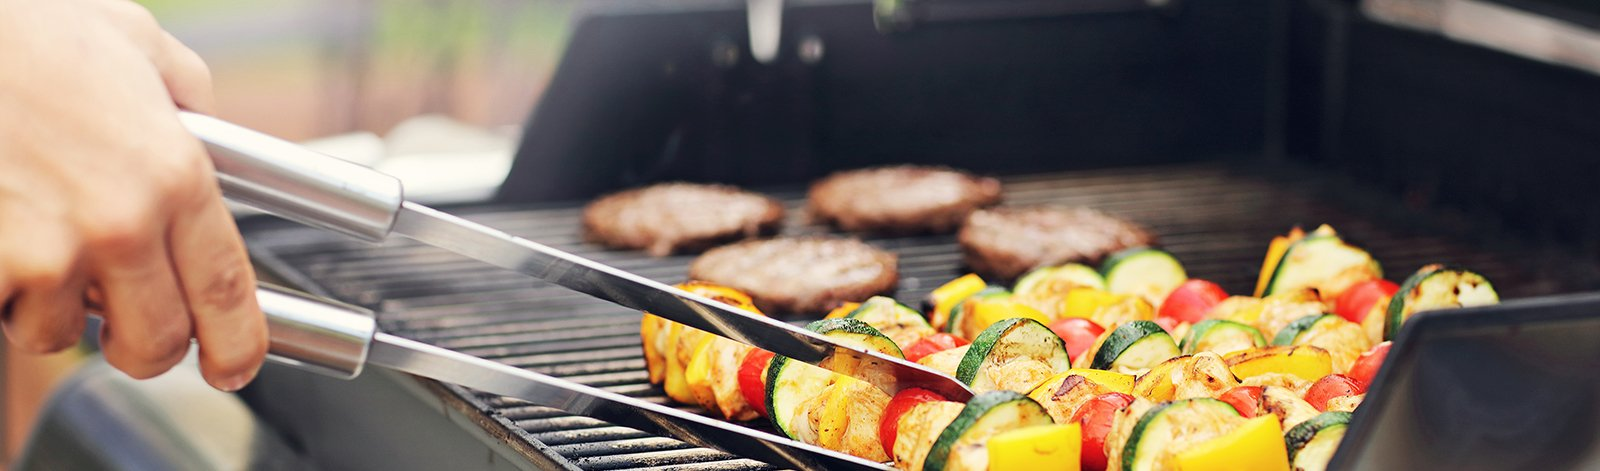 Vegetable skewers and burgers on the grill